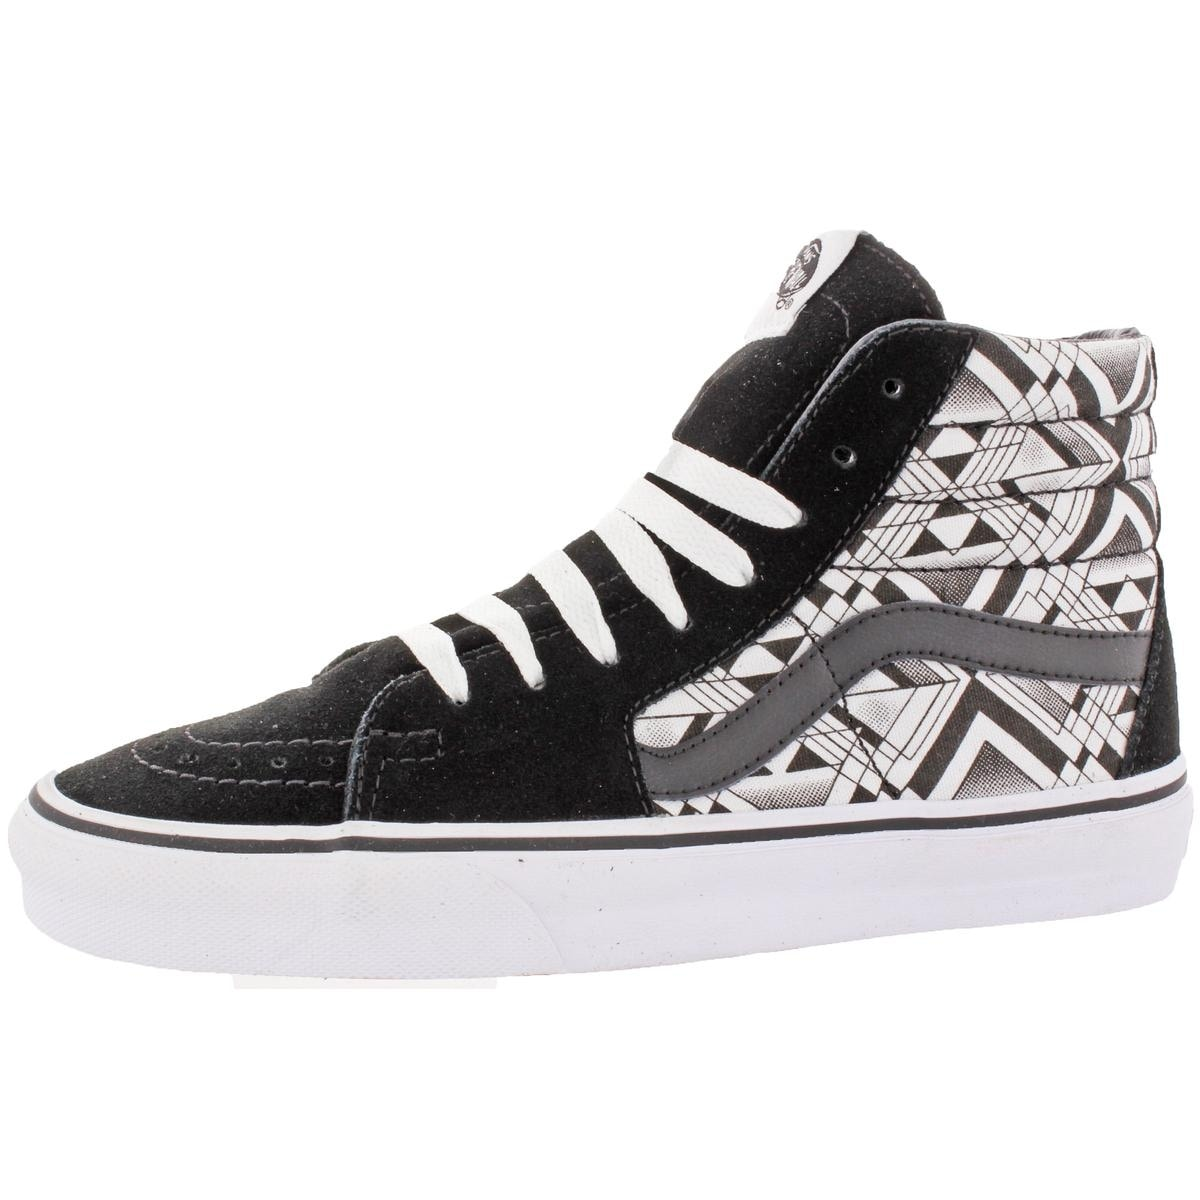 Shop Vans Womens Sk8-Hi Skate Shoes Suede Trim High Top - 6.5 Medium ... 96b47b3e03